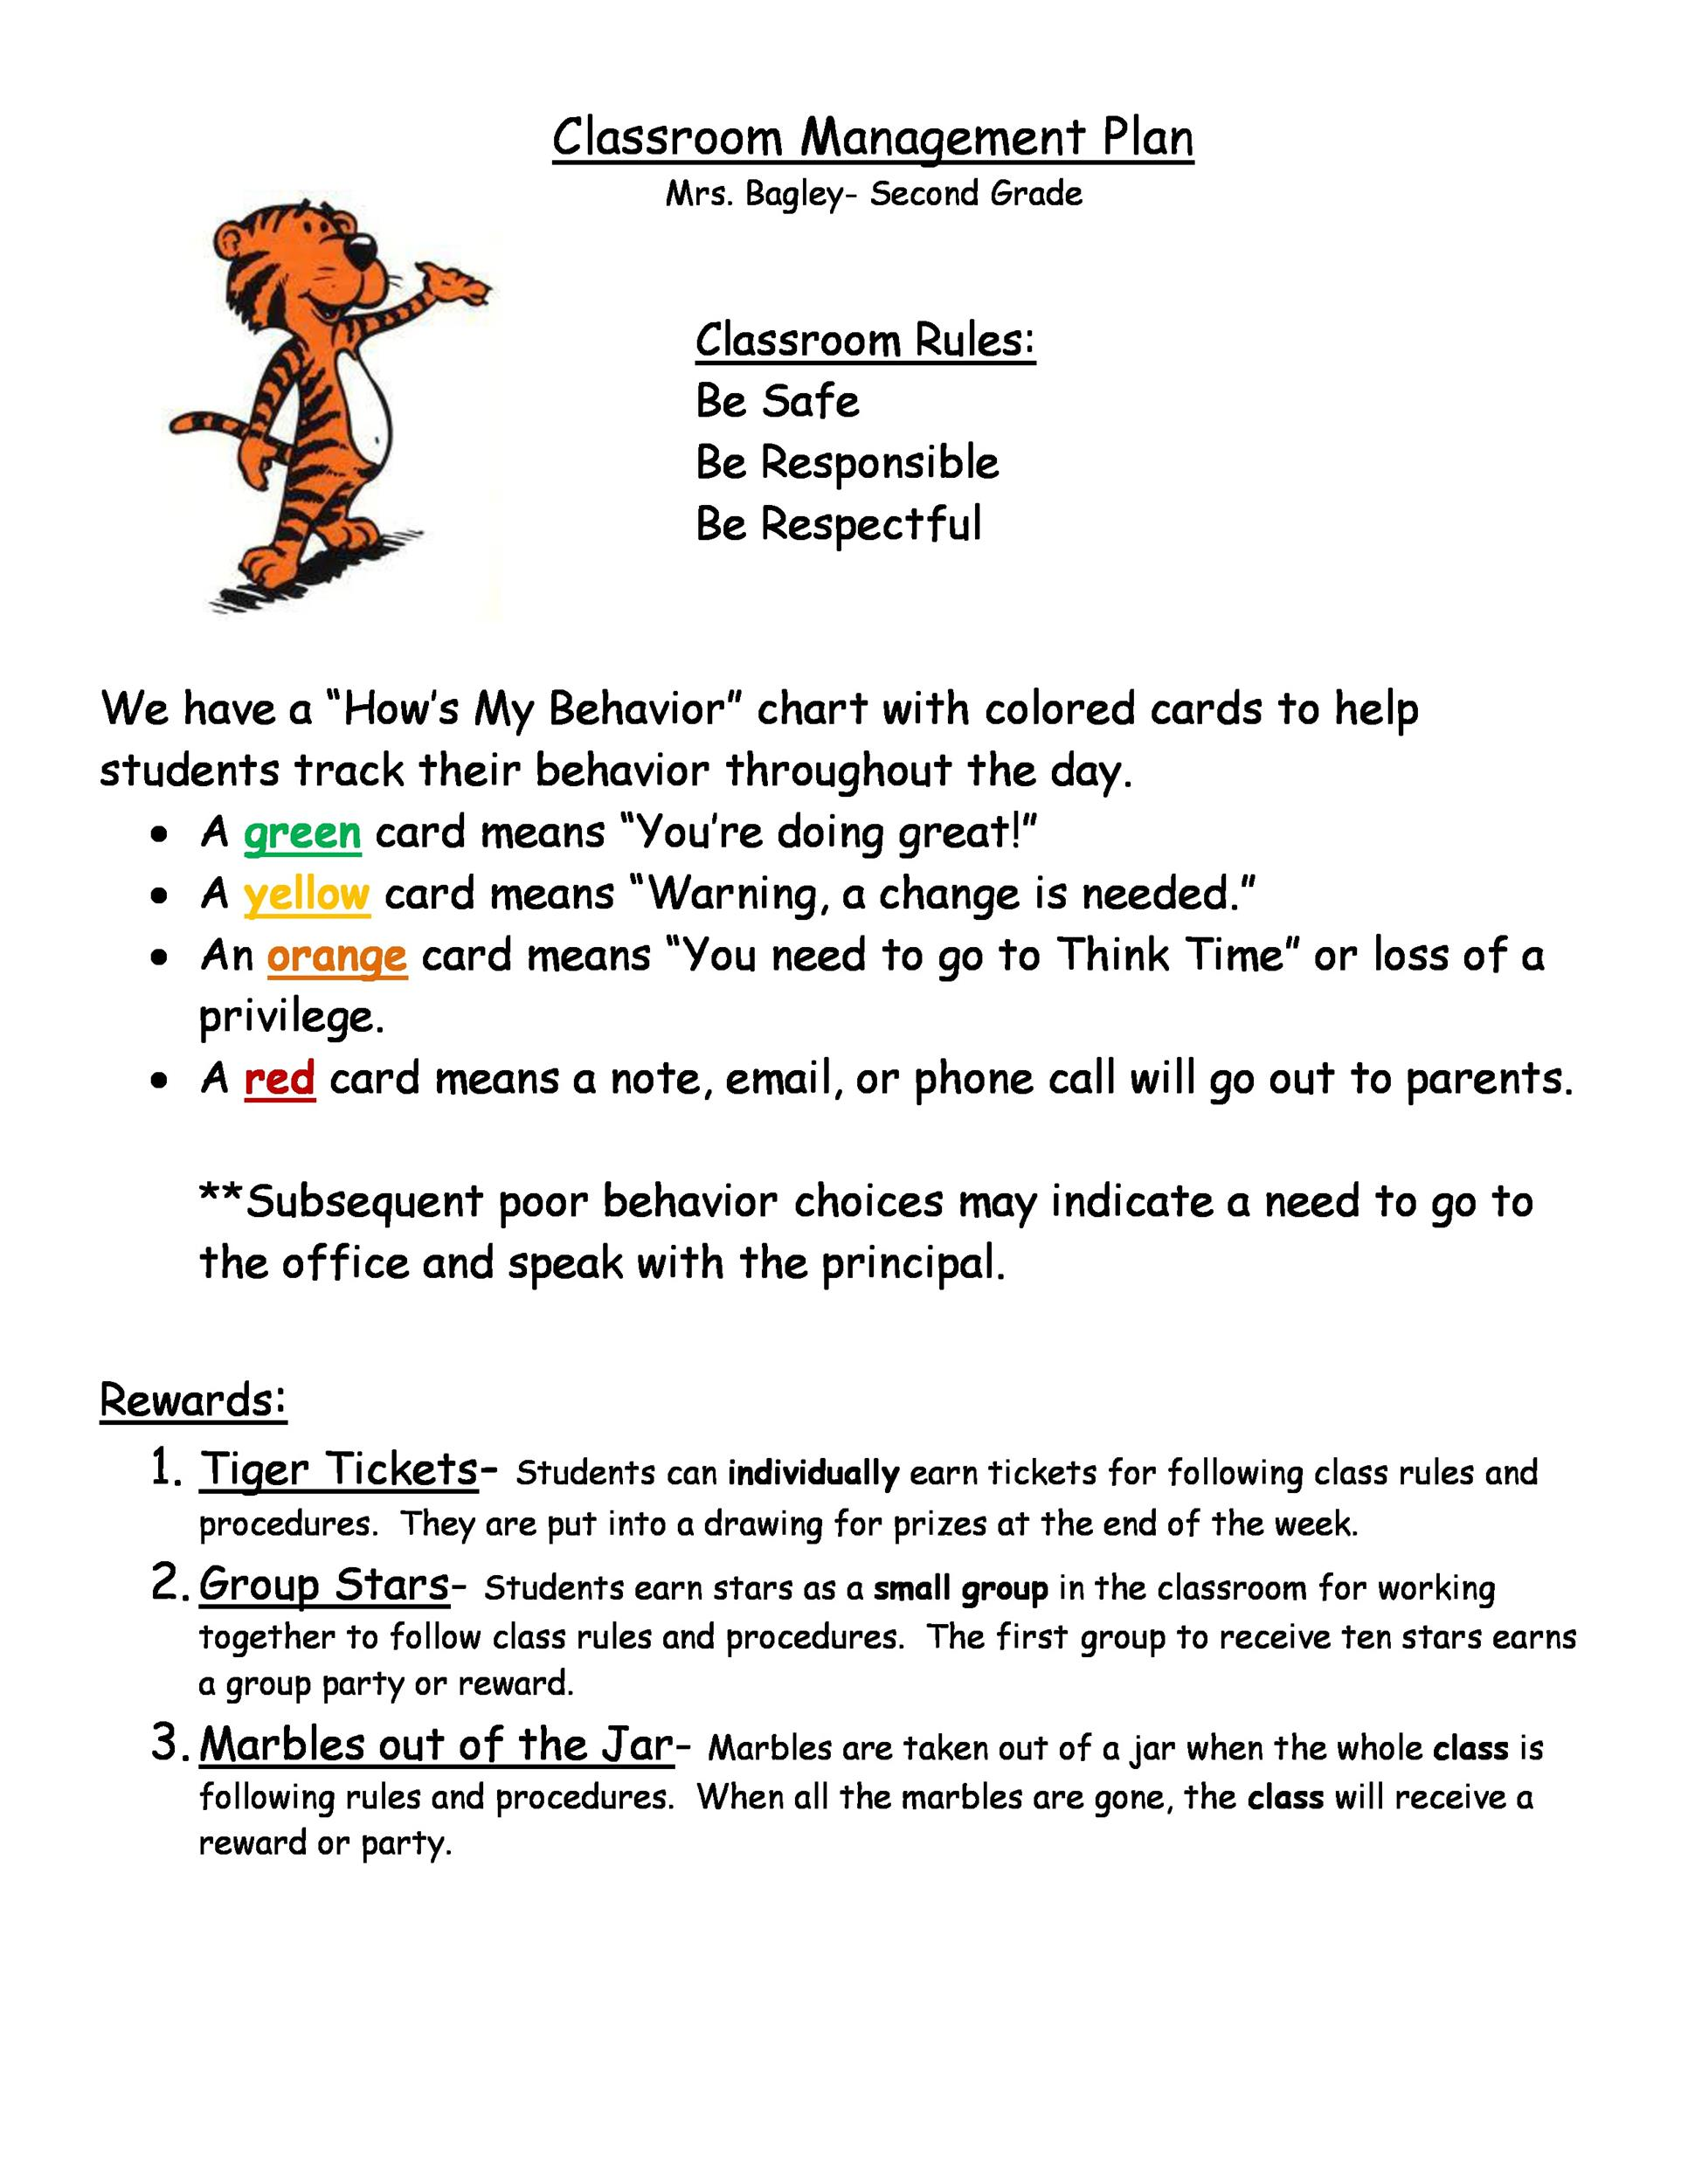 Definition Of Classroom Design ~ Classroom management plan templates examples